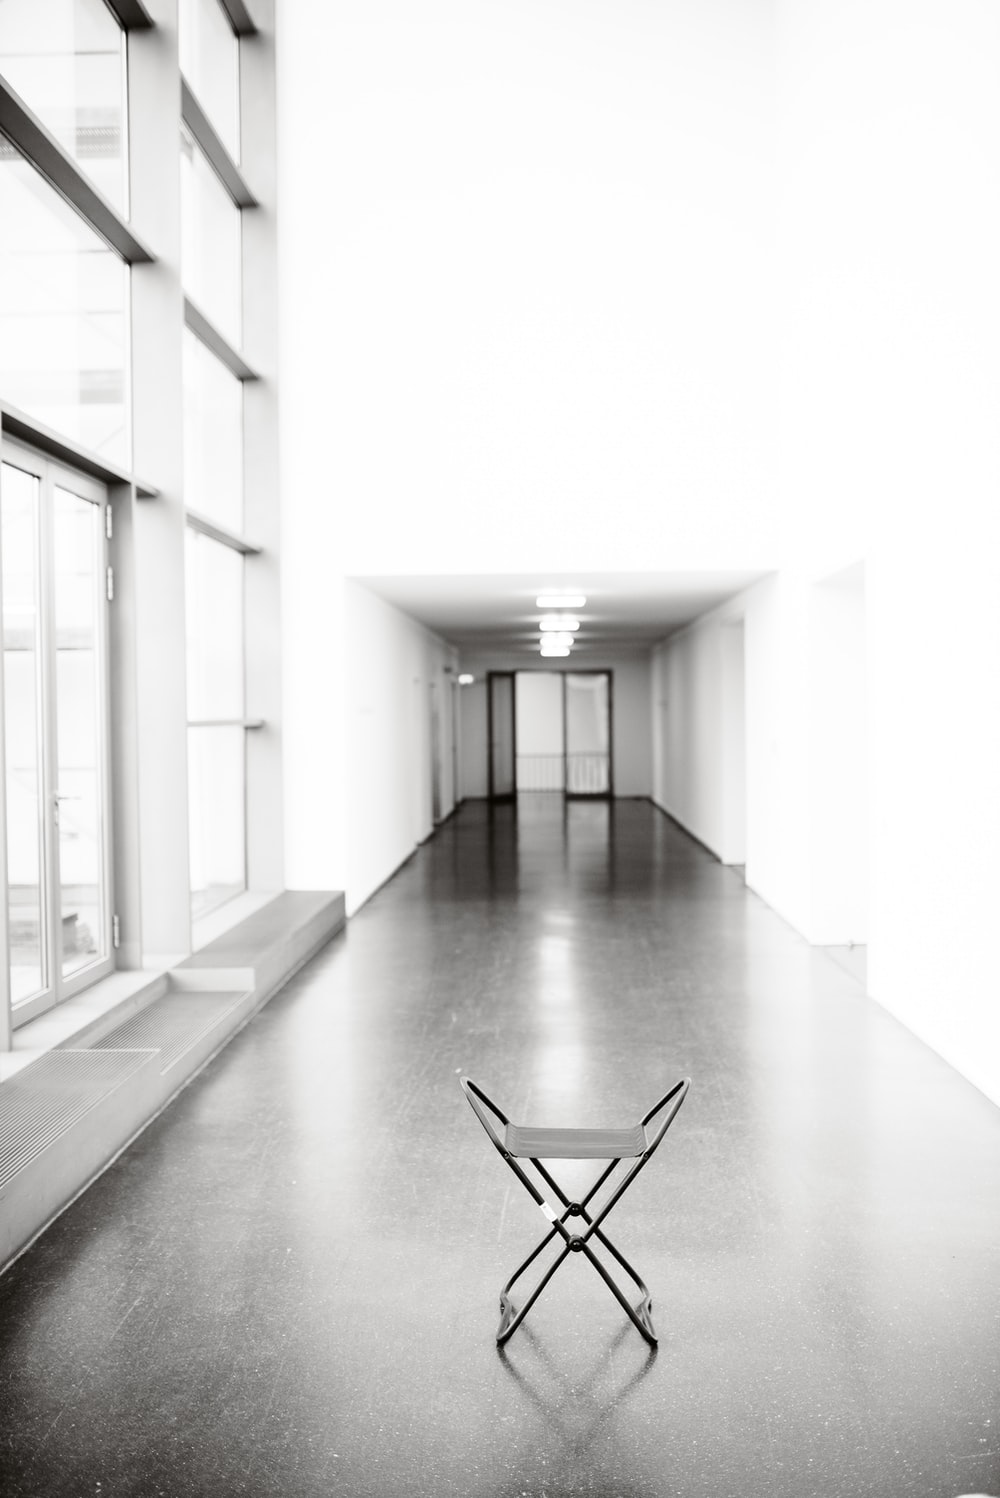 vacant white chair in between hallway of building